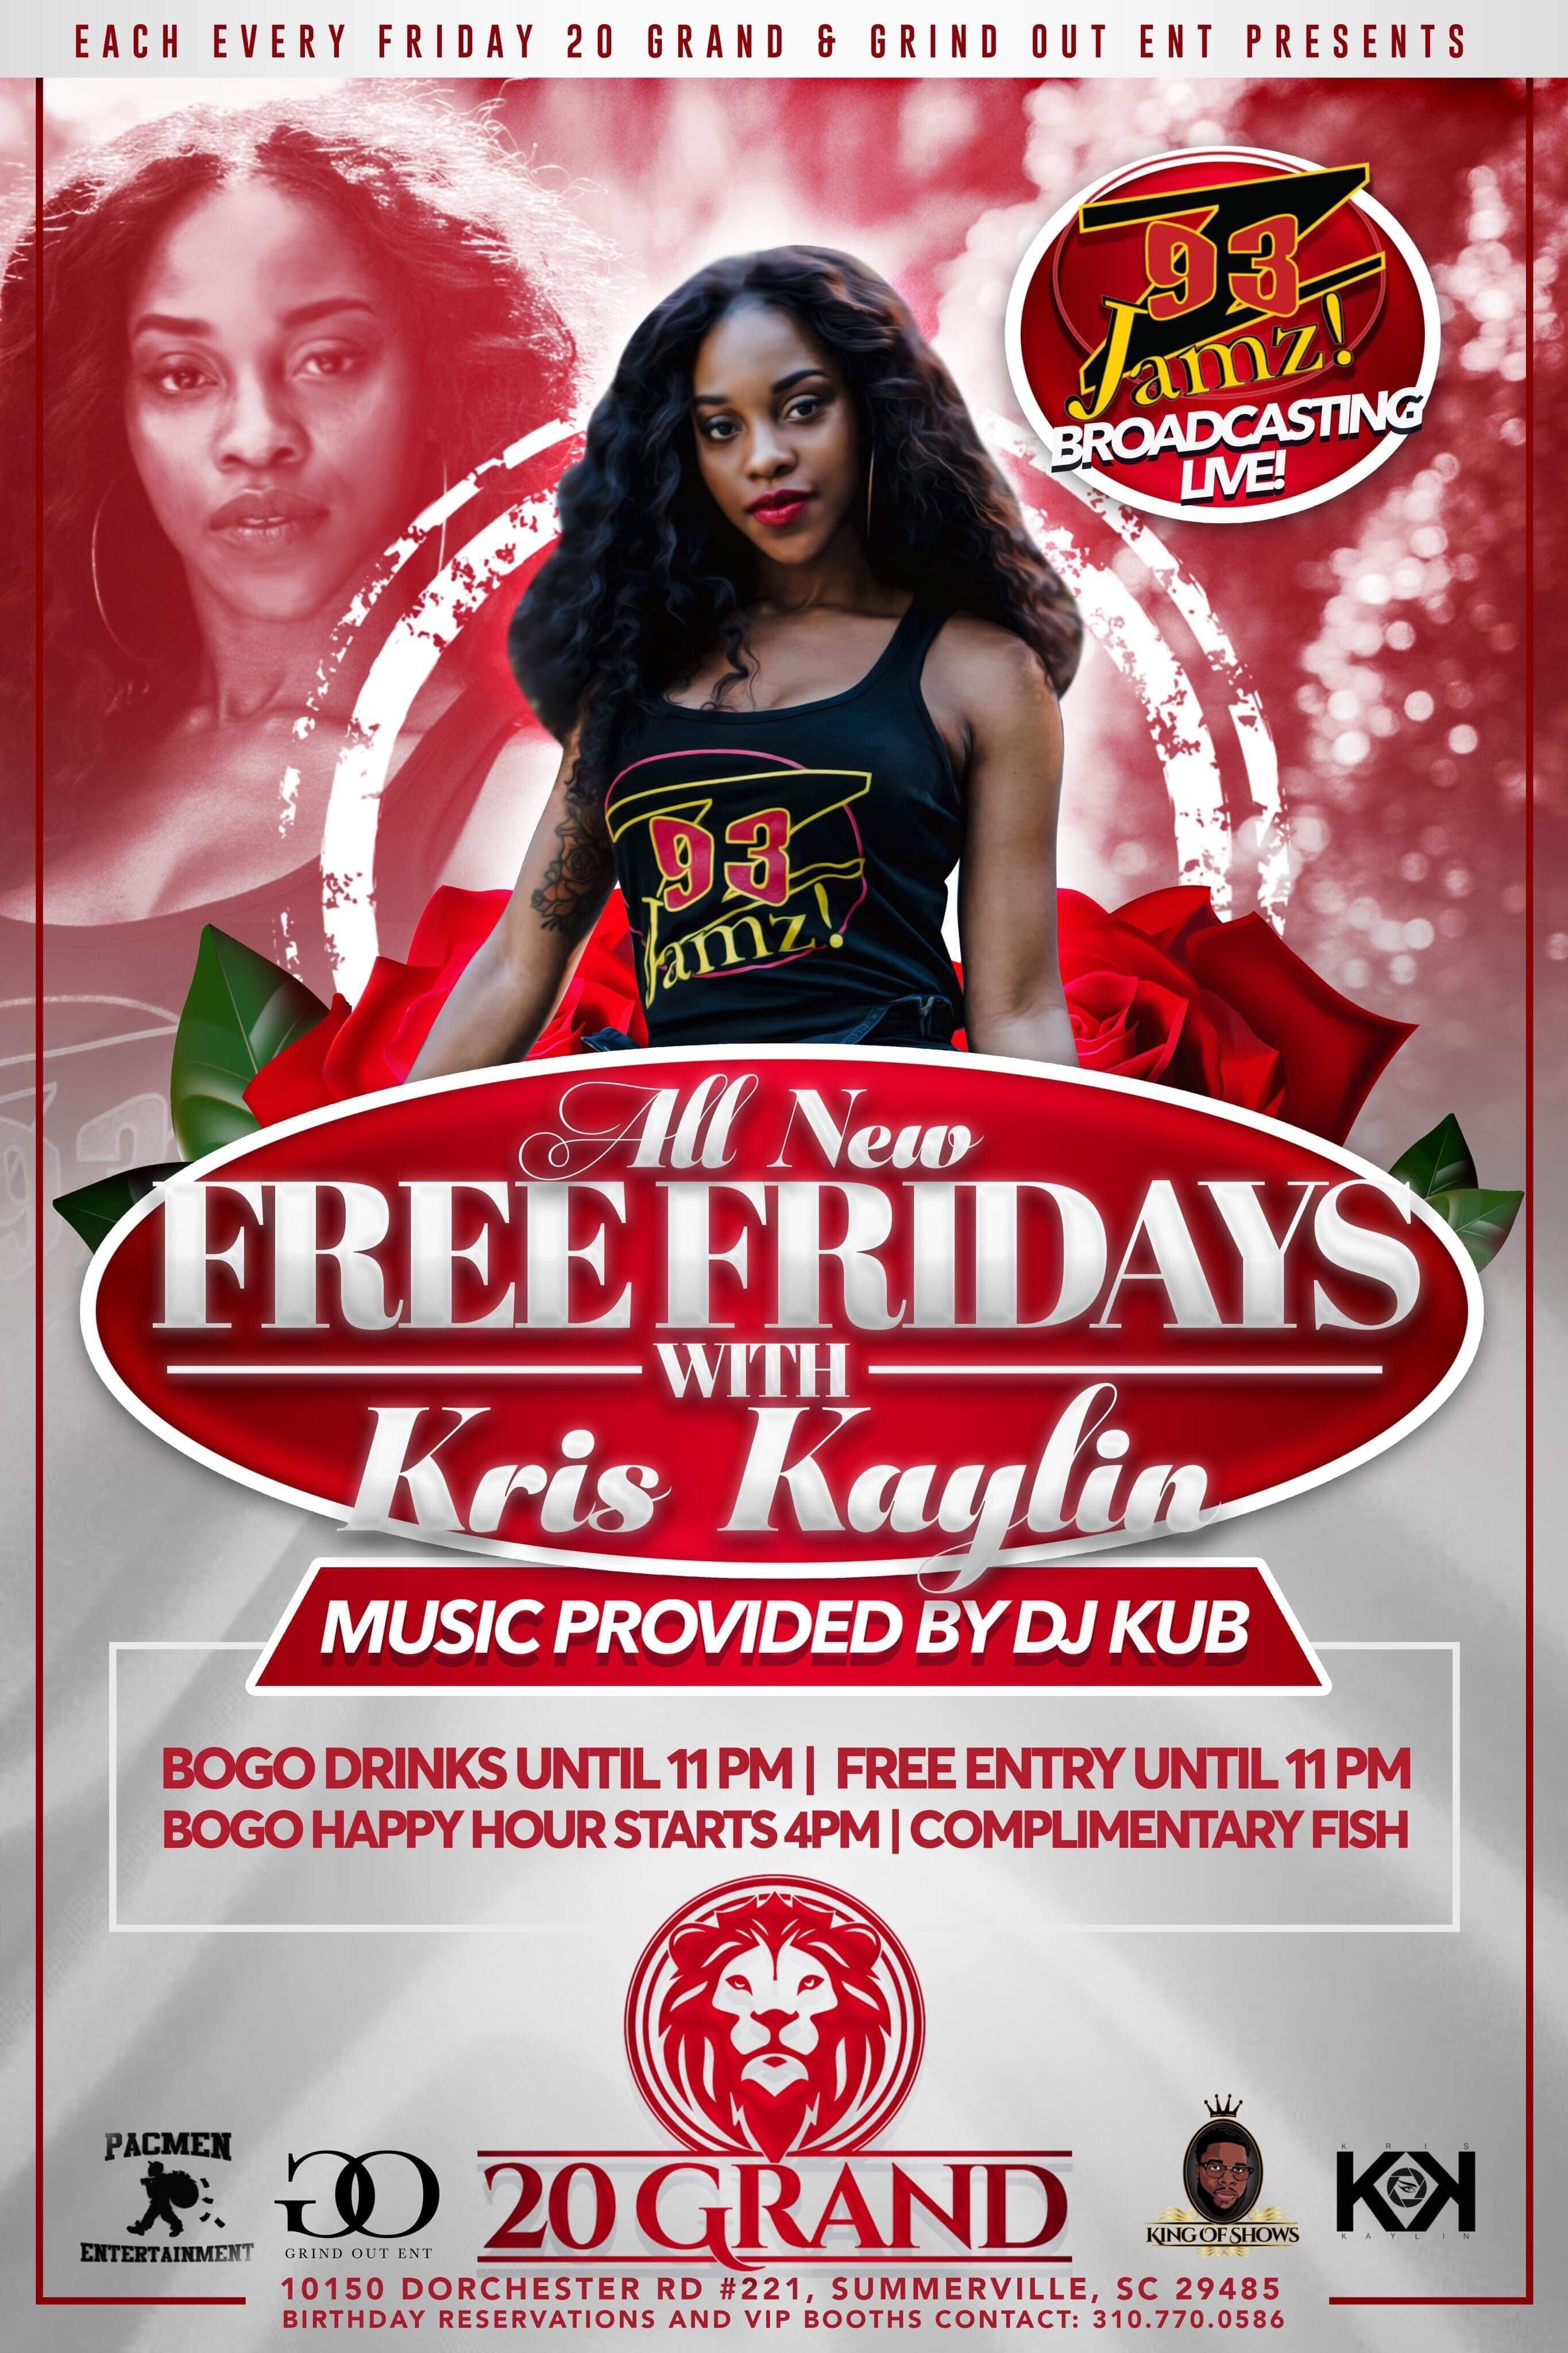 Z93 JAMZ IS BROADCASTING LIVE FROM 20 GRAND BAR LOUNGE EVERY FRIDAY NIGHT JOIN KRISKAYLIN 10PM TO 12MIDNIGHTMUSIC BY DJ KUB